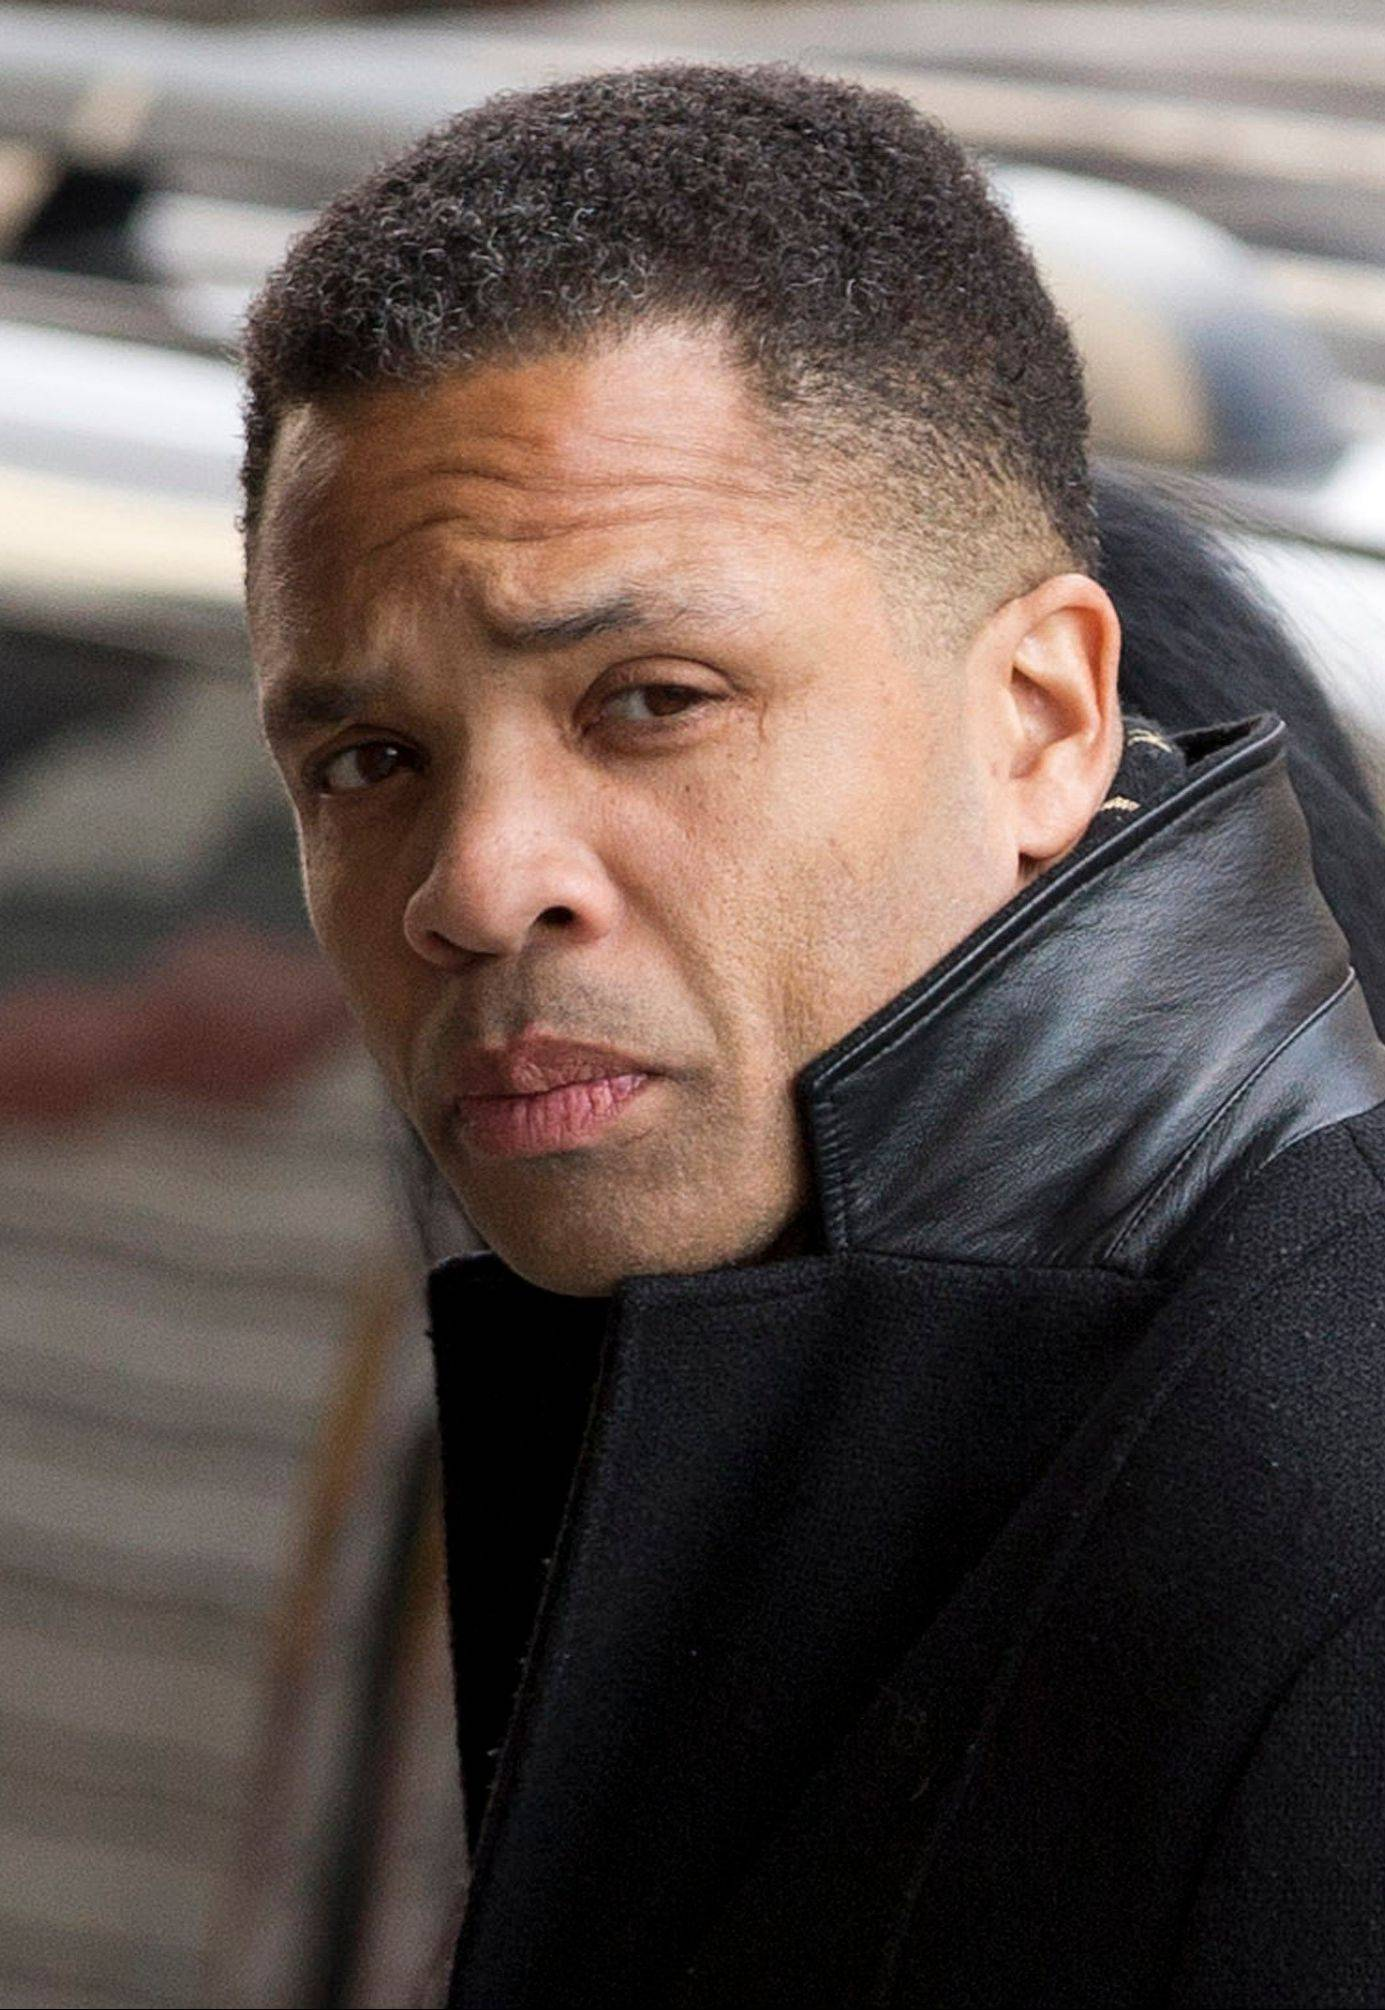 Government recommends 4 years for Jesse Jackson Jr.